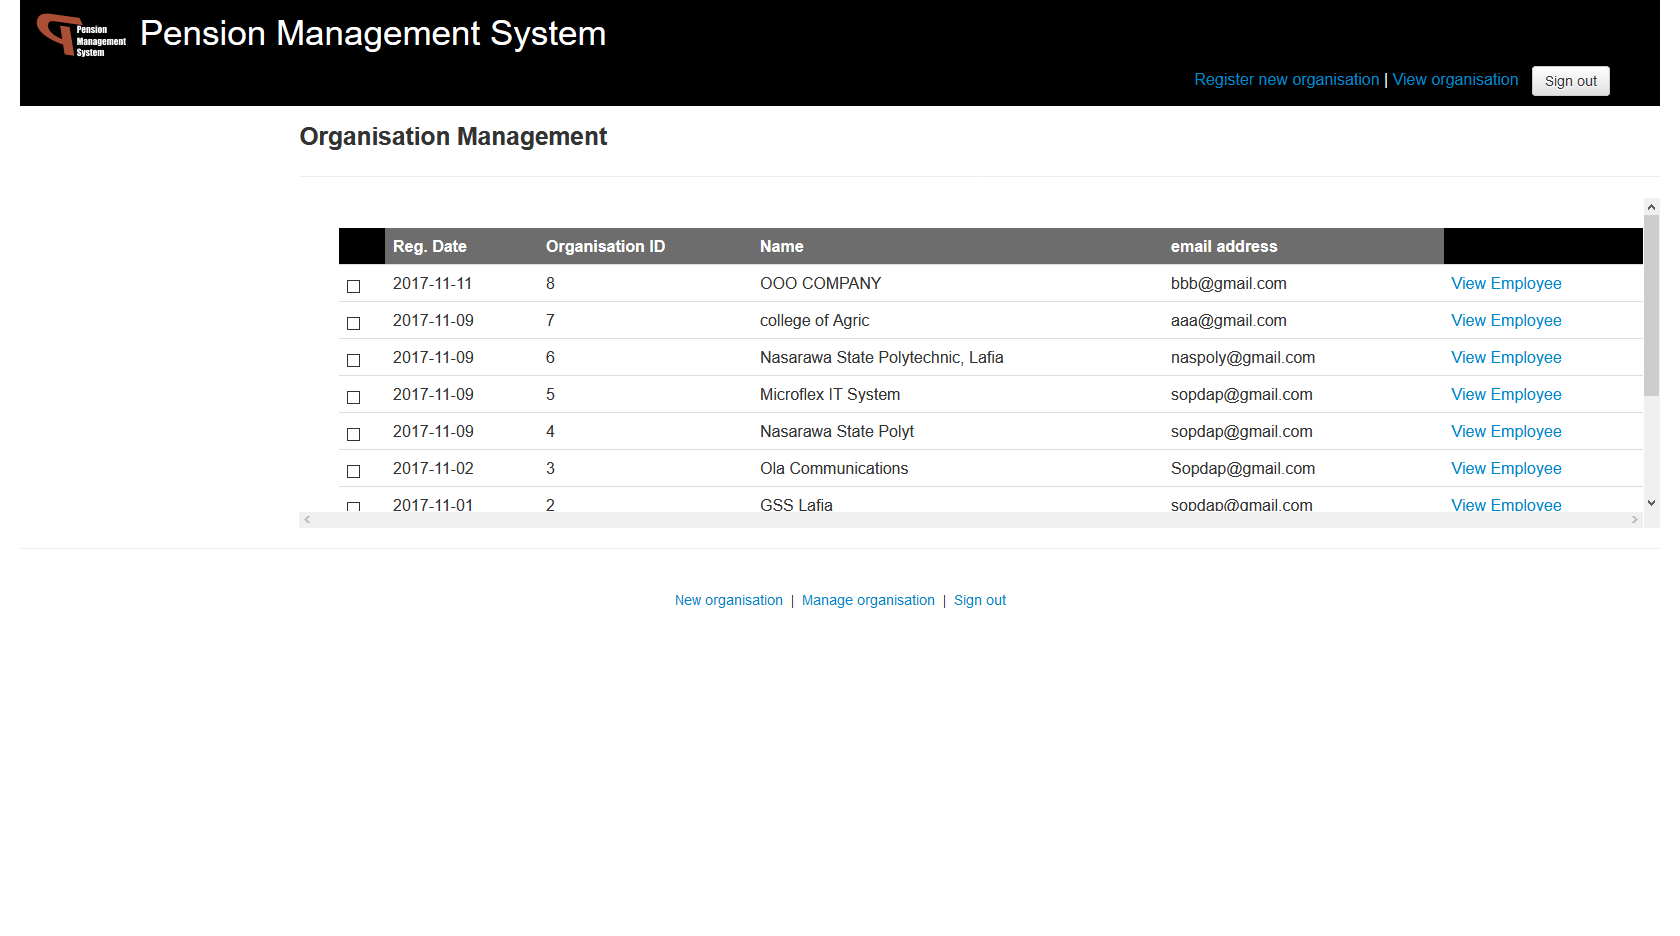 Pension Management System - Employee Details